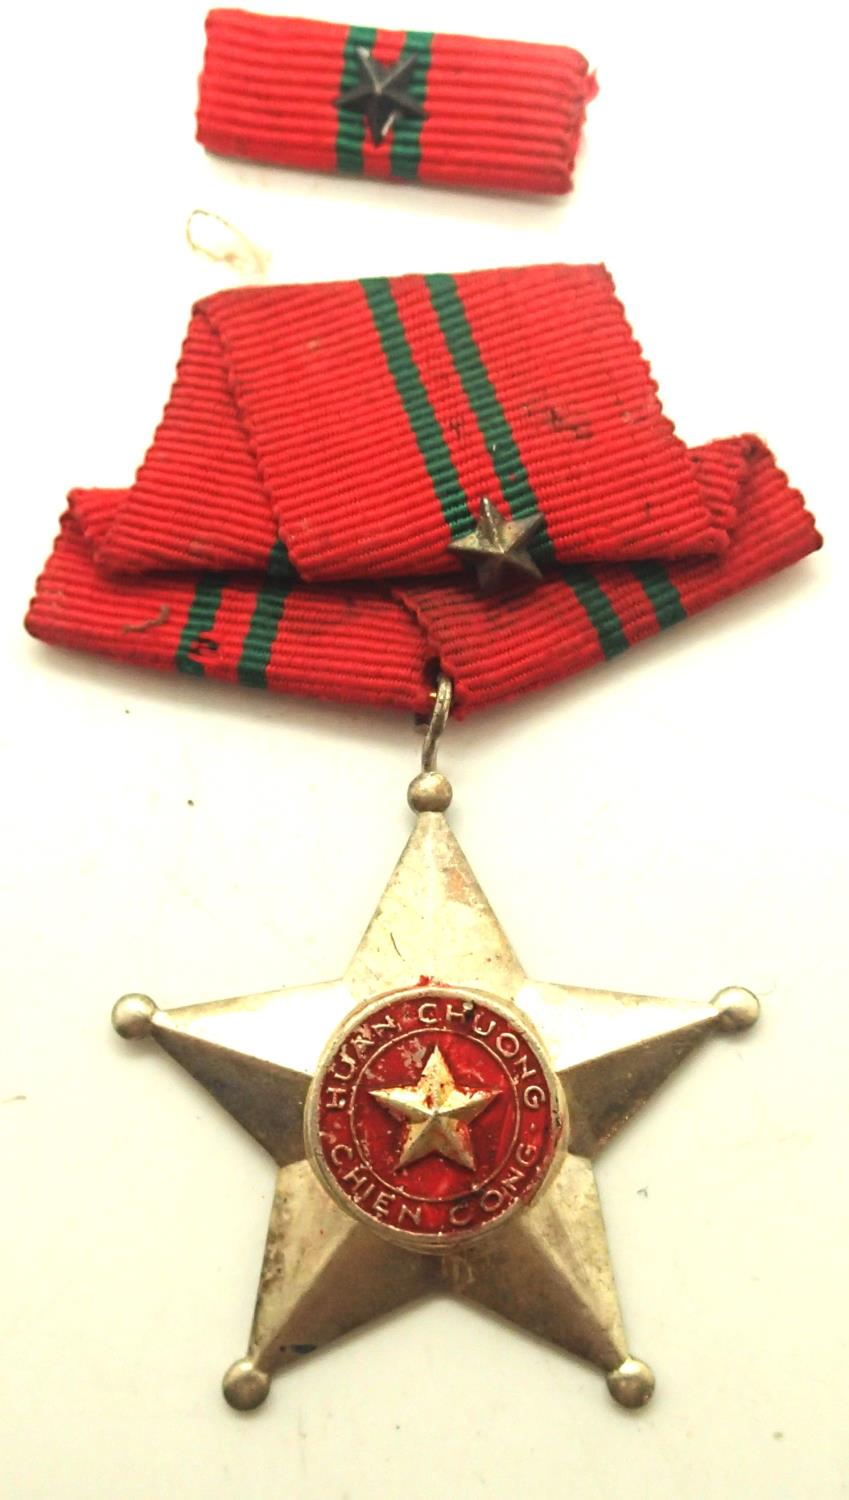 Vietnam War NVA medal, 2nd class. P&P Group 1 (£14+VAT for the first lot and £1+VAT for subsequent